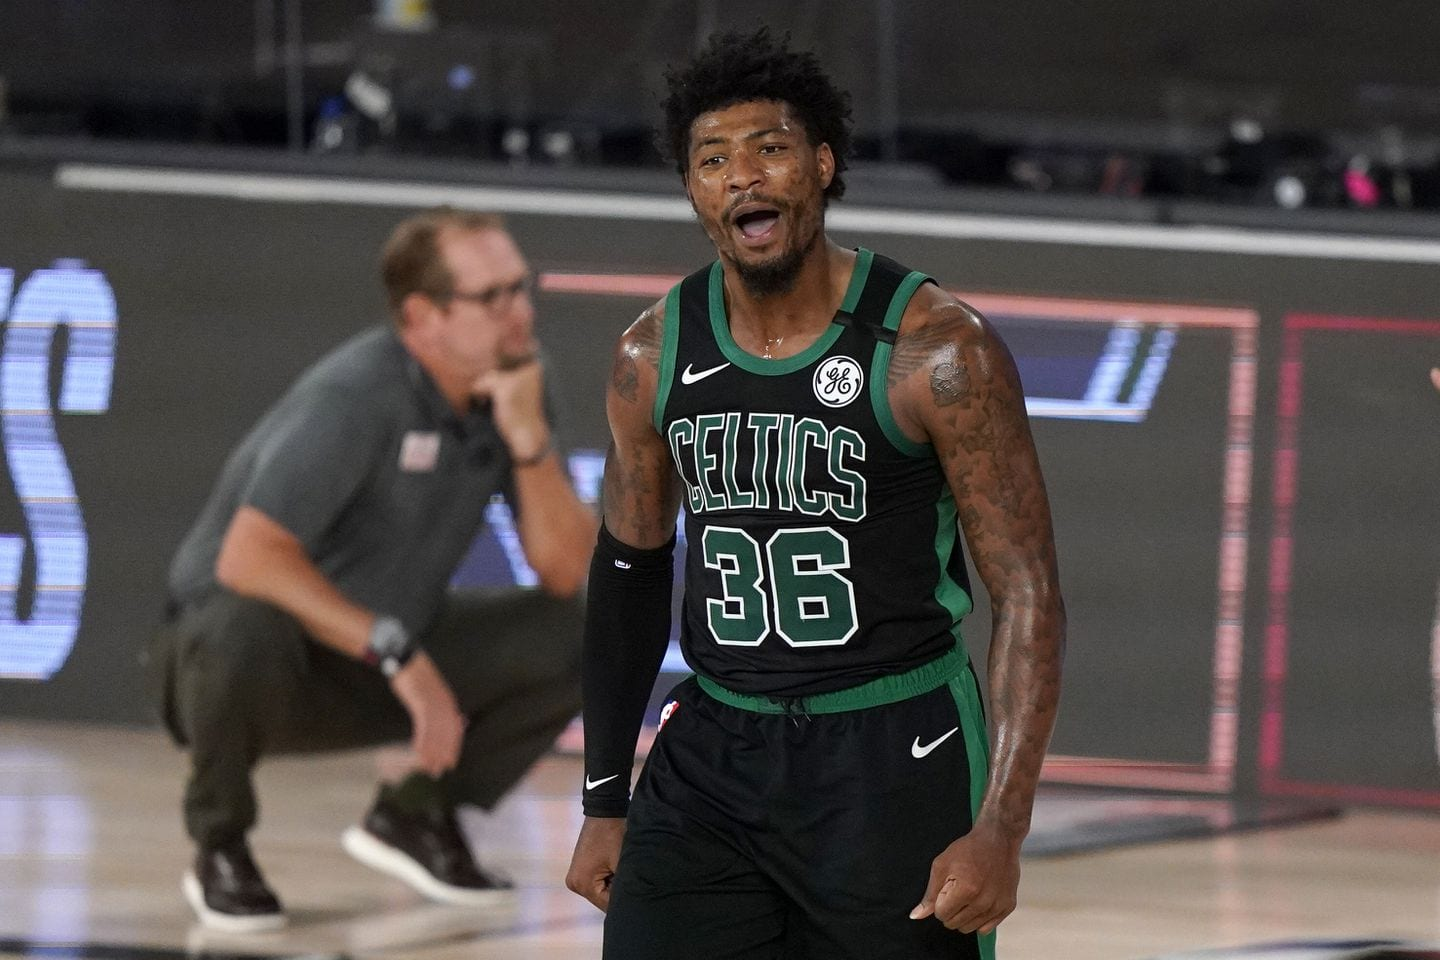 Boston's Marcus Smart Discusses Incident with Racist Celtic's Fan